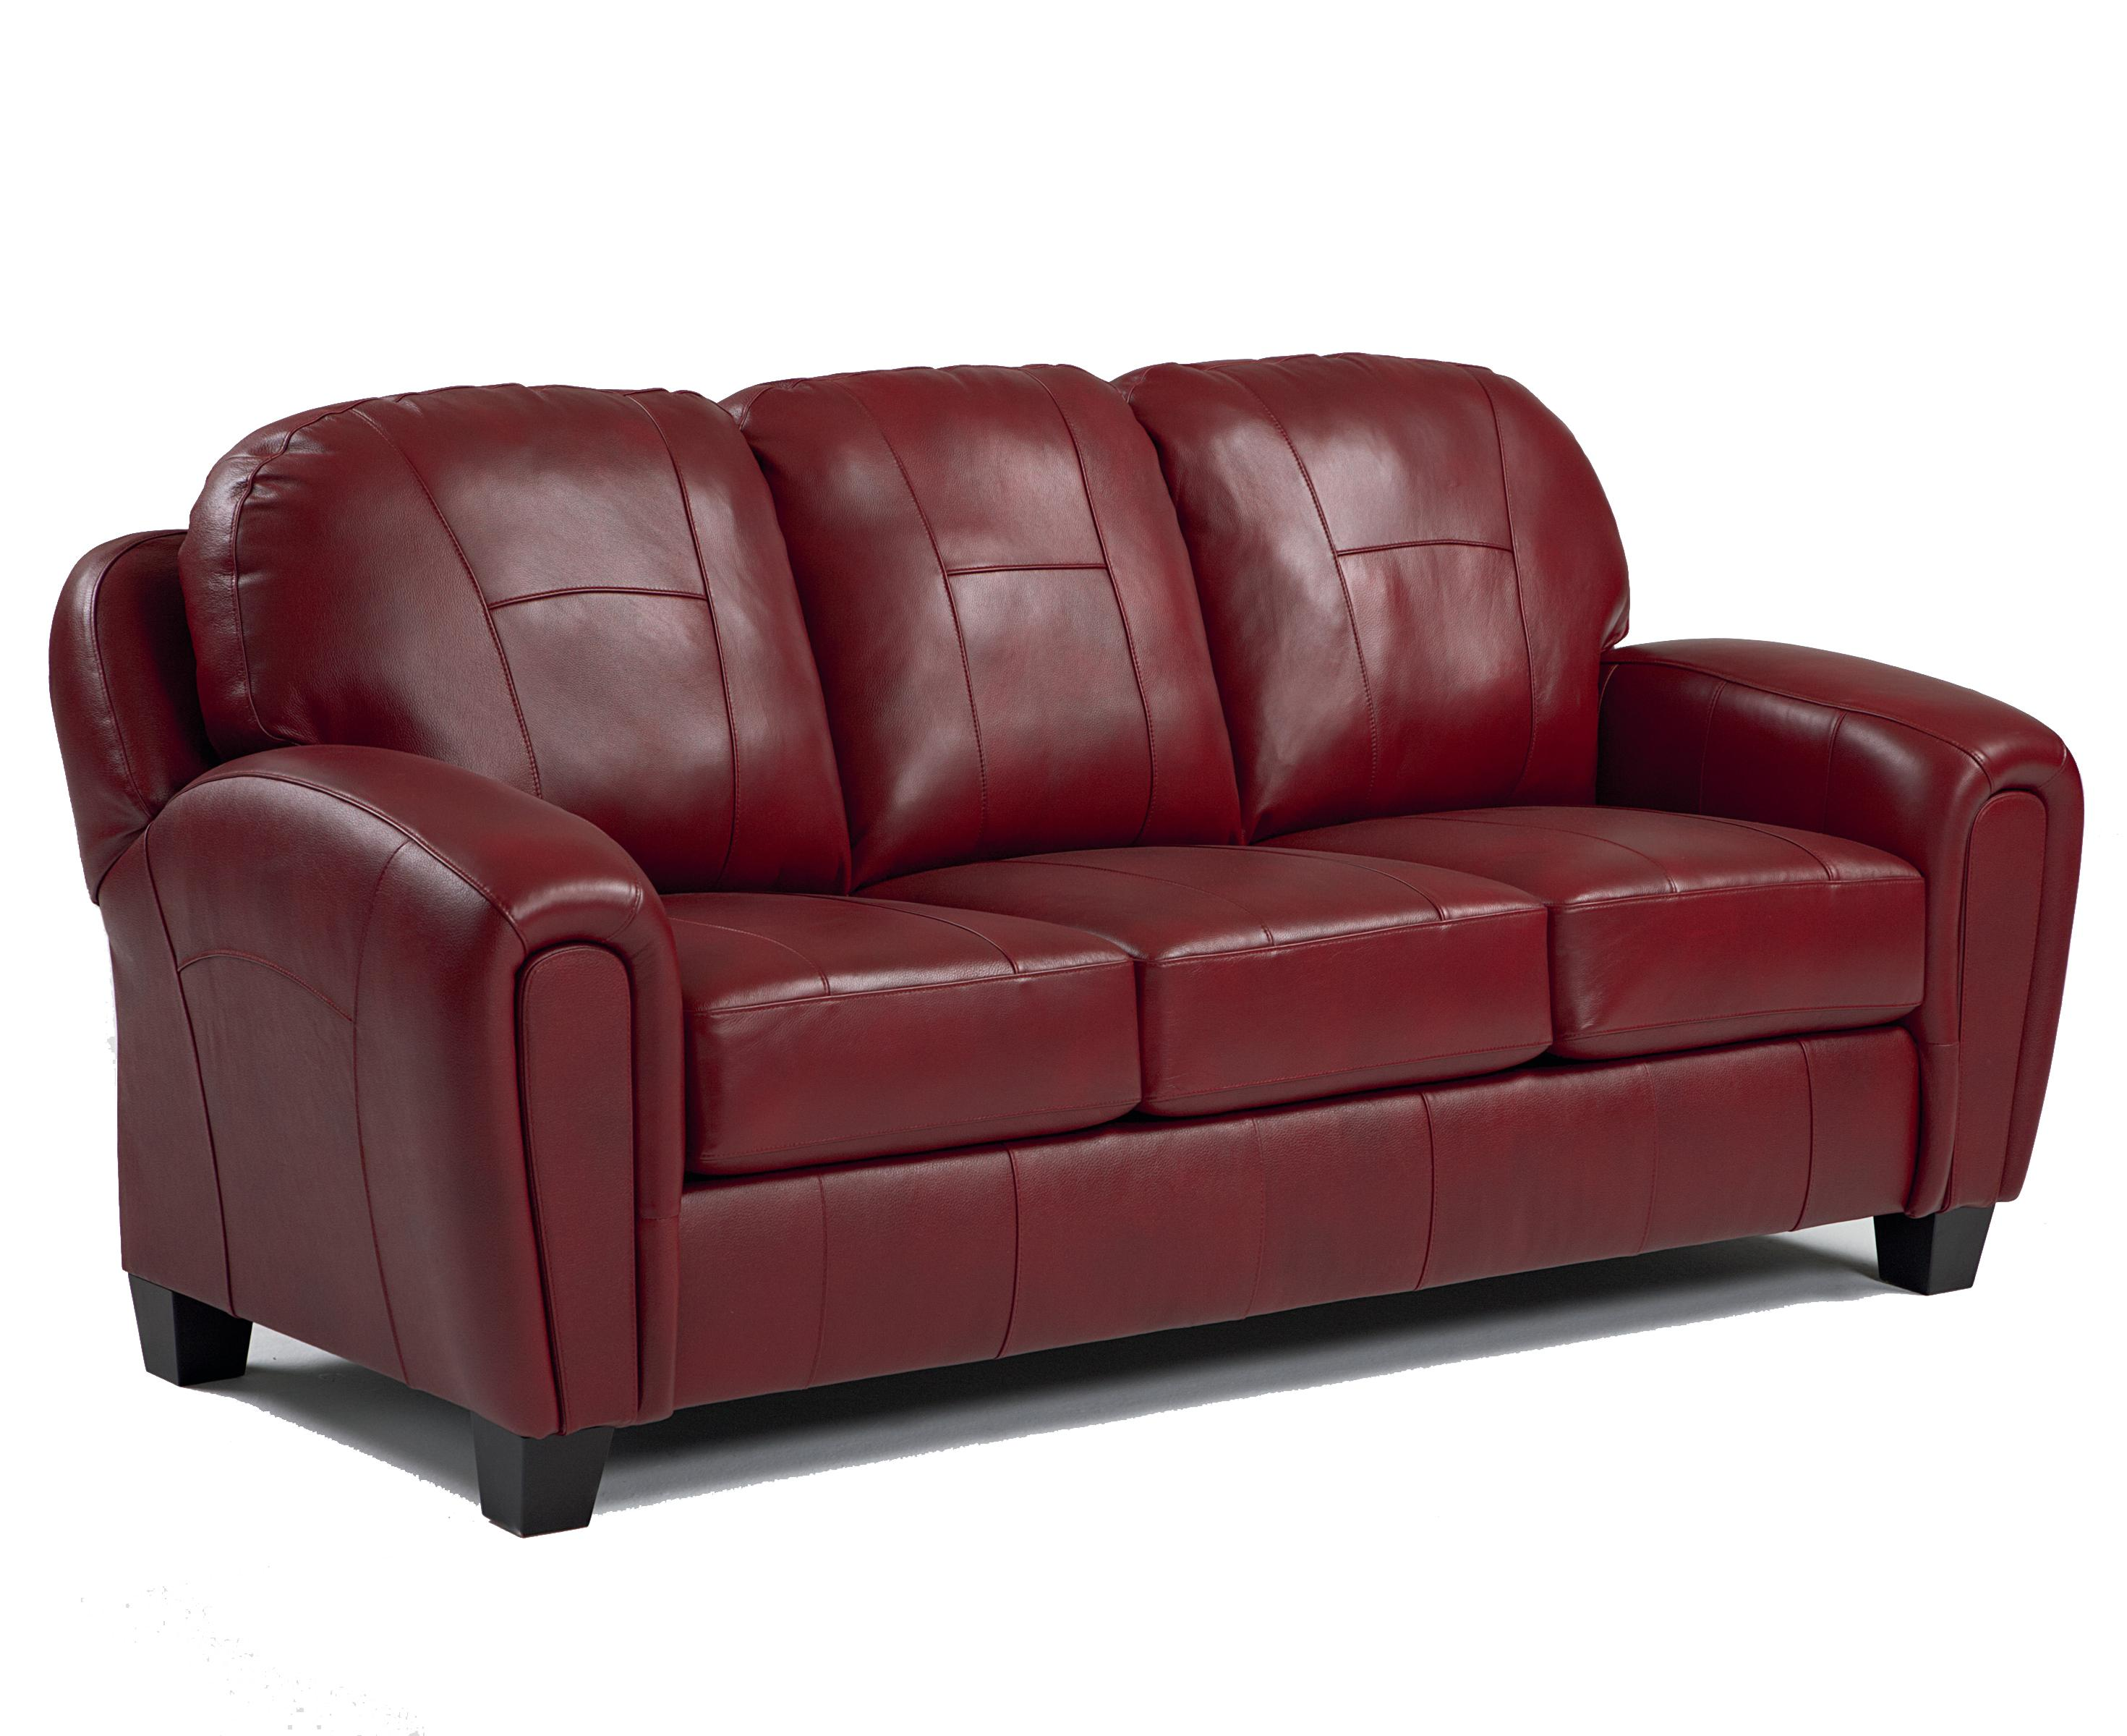 Best Home Furnishings Hammond Sofa with Track Arms and Block Feet